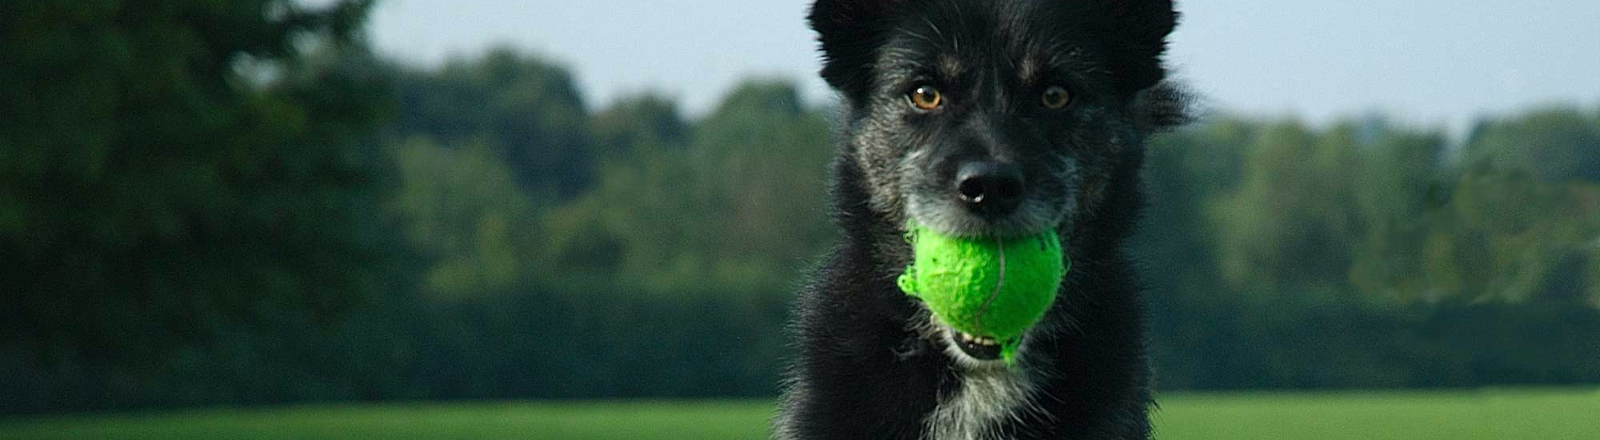 Black and white shepherd dog with green tennis ball in mouth bounds across green grassy area at dog park